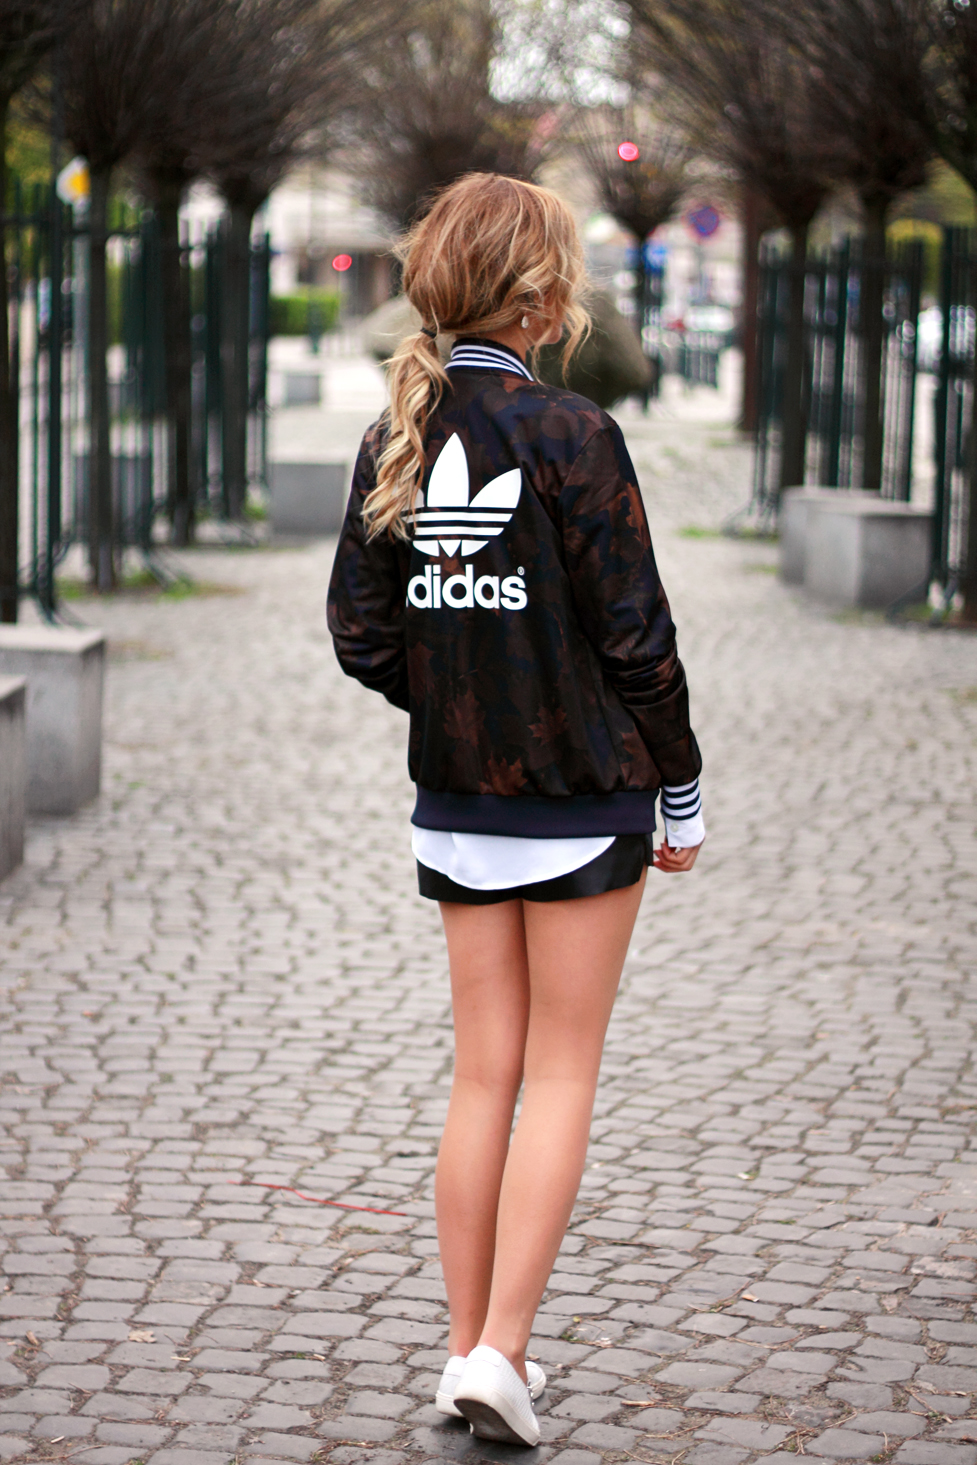 street style tumblr girl blonde beauty ootd look lookbook outfit adidas jacket fashion vogue